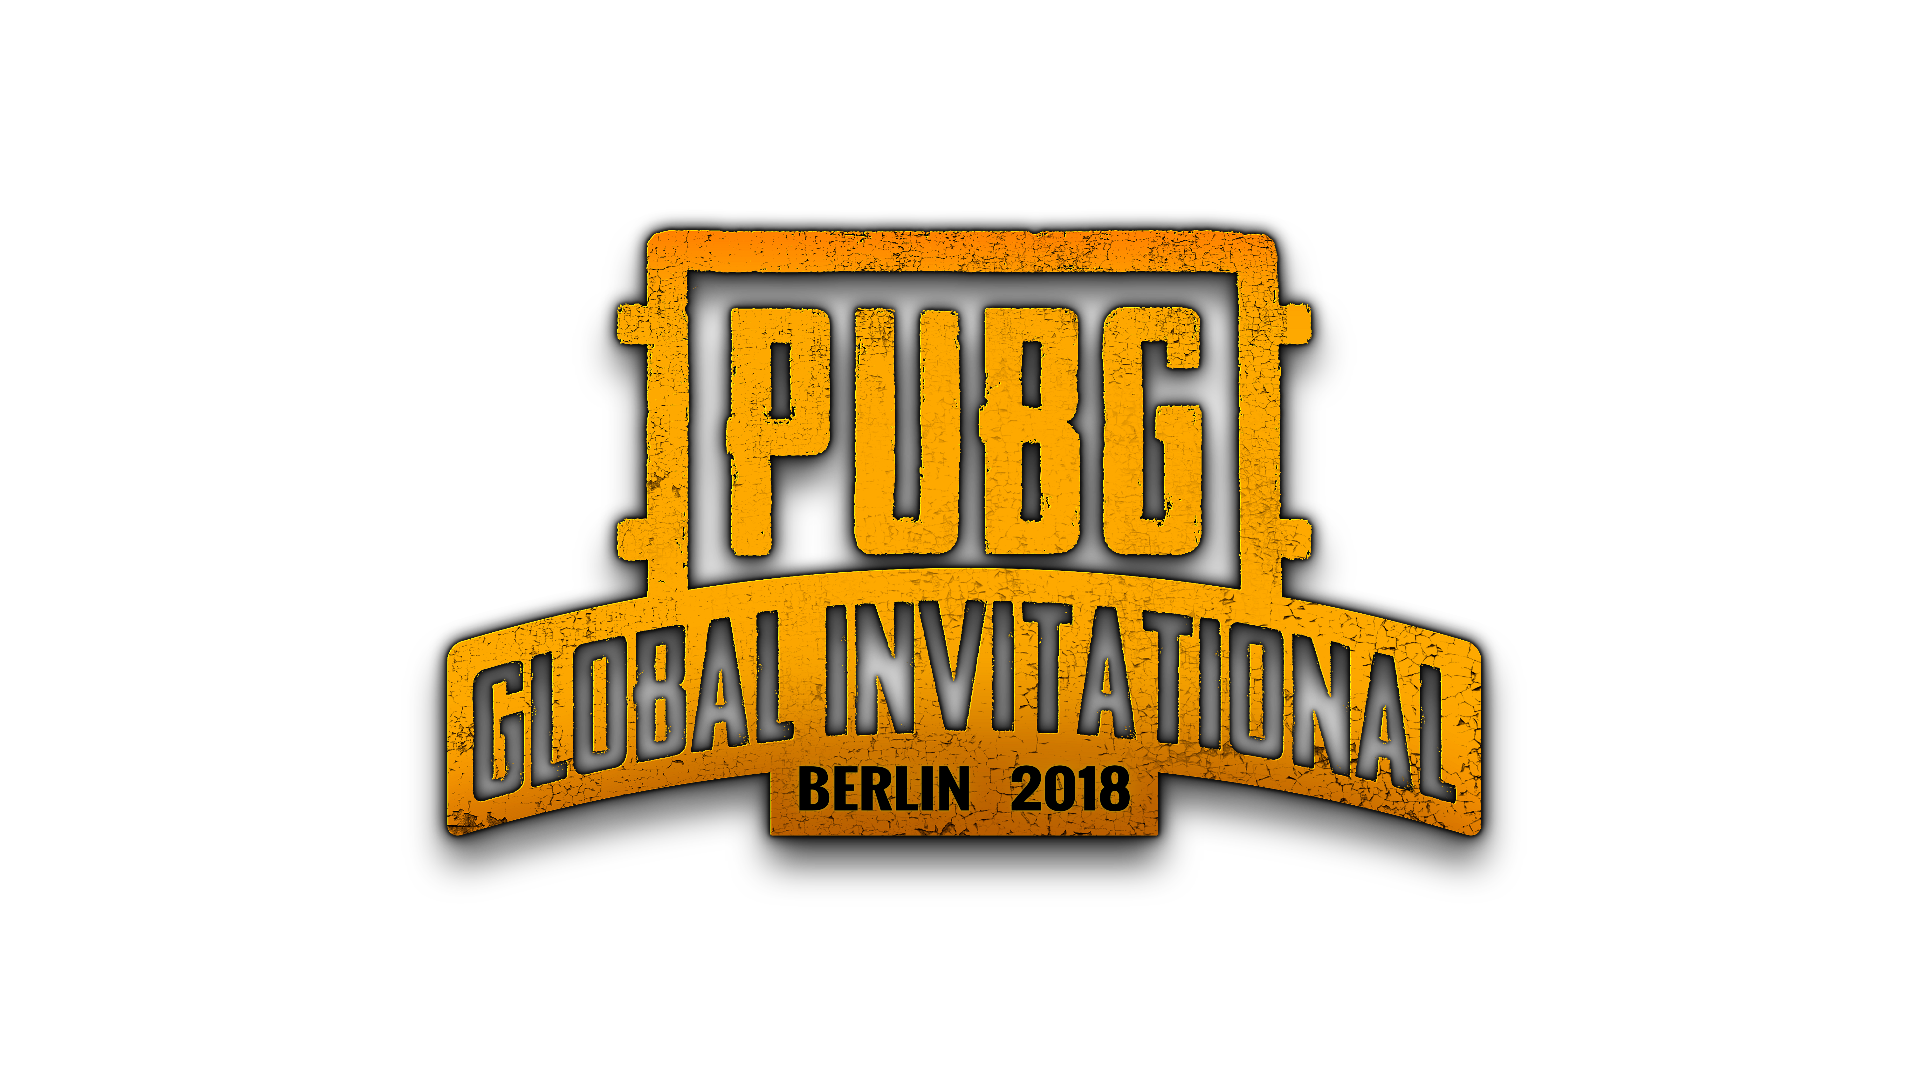 Pubg Name Png Hd: PLAYERUNKNOWN'S BATTLEGROUNDS :: Announcing PUBG Global